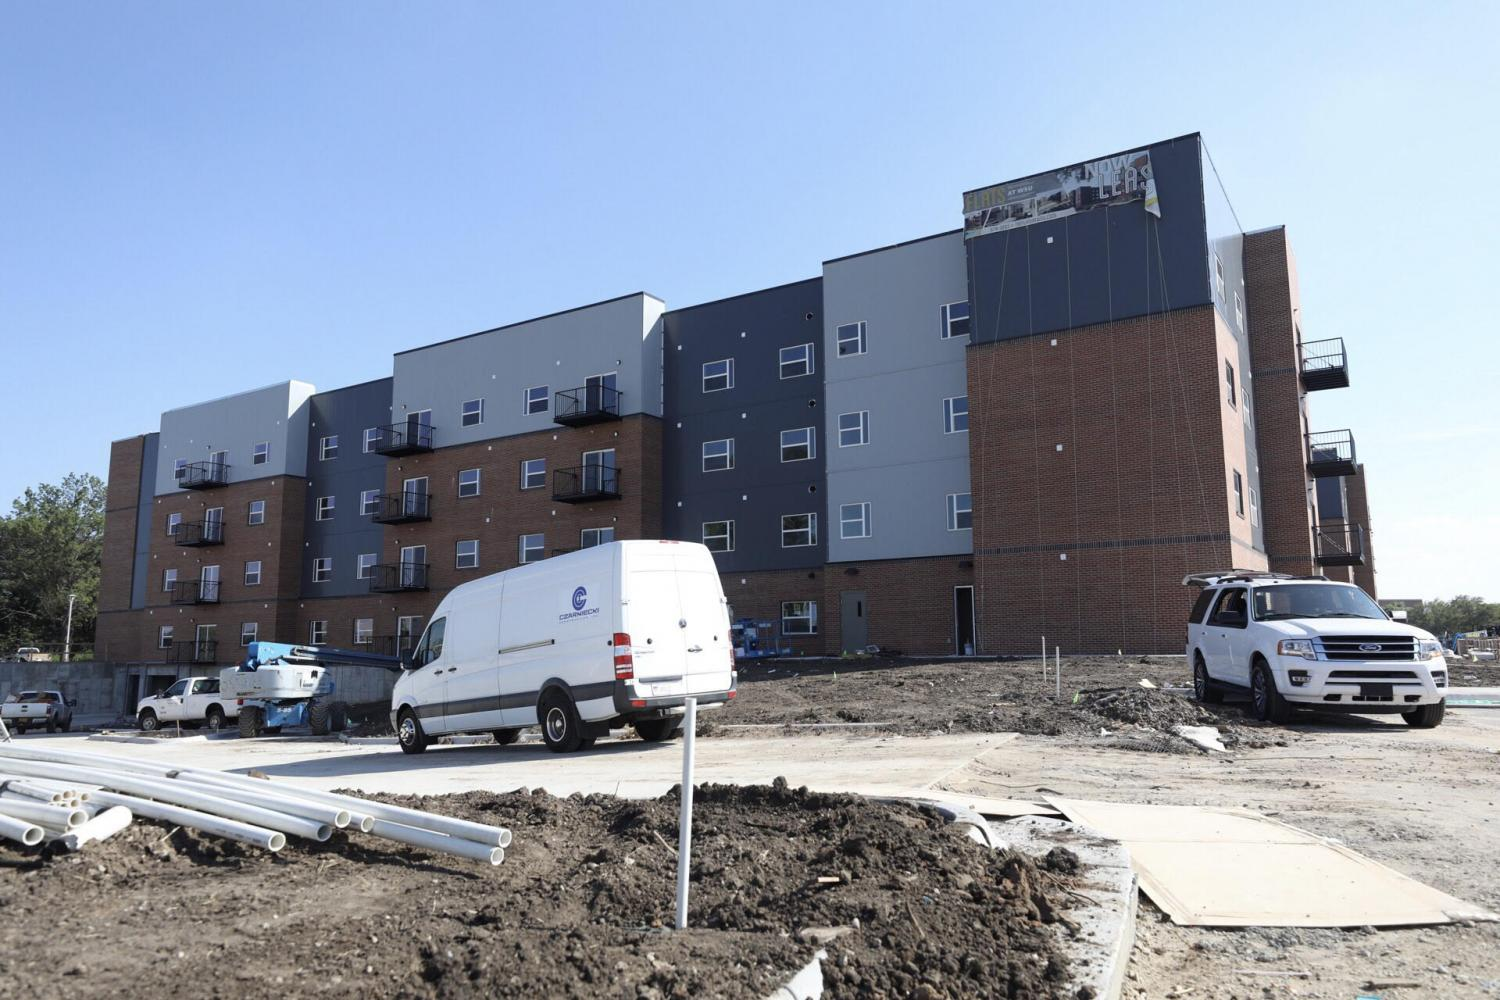 The+Flats+at+Wichita+State+University+is+a+private-owned+apartment+complex+on+Innovation+Campus.+Aug.+14%2C+Wichita+State+announced+about+300+students+would+be+moved+from+Fairmount+Towers+to+the+complex.